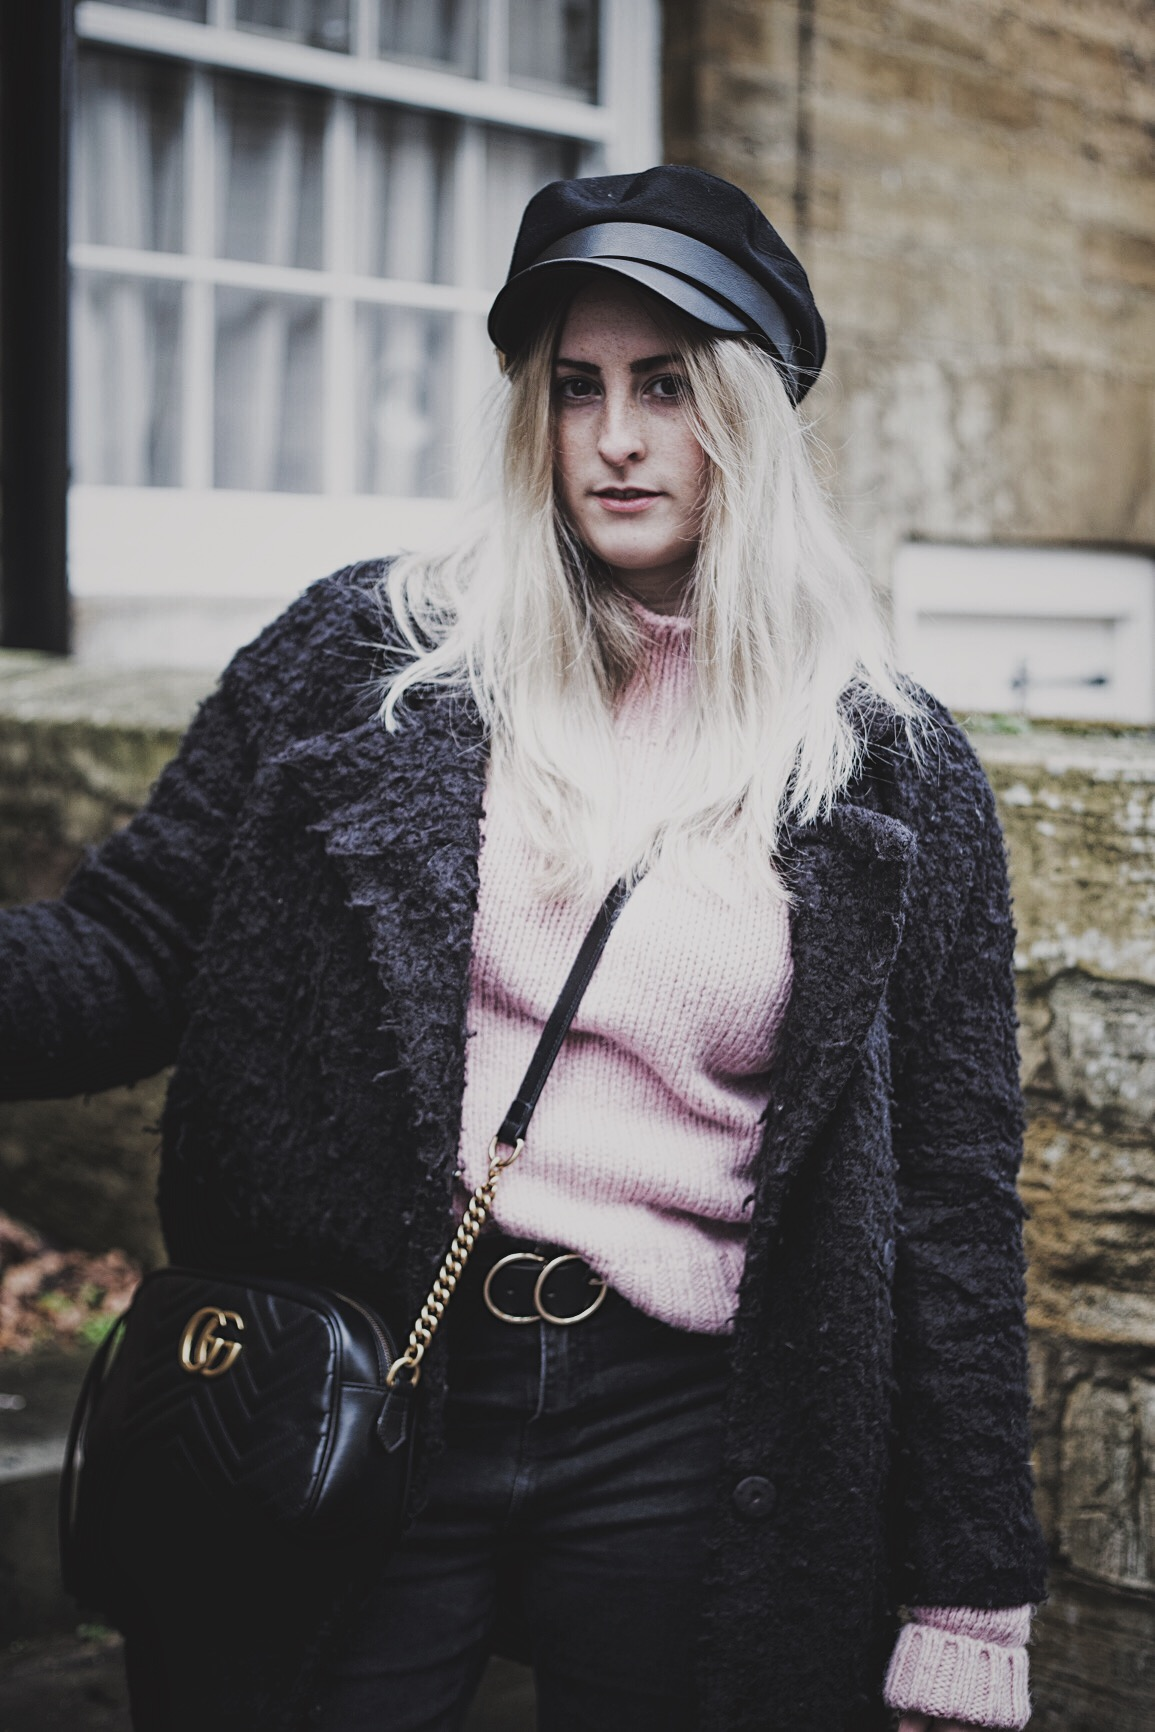 RIVER ISLAND QUEENBEADY 2017 IN REVIEW